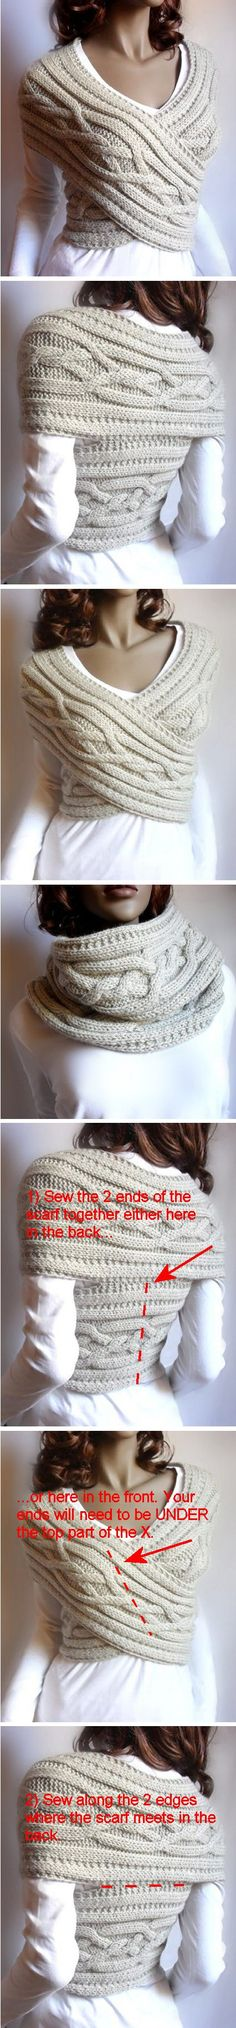 Cabled Sweater Criss Cross Vest And Cowl Neckwarmer By Pilland - Purchased Knitted Pattern - (etsy)